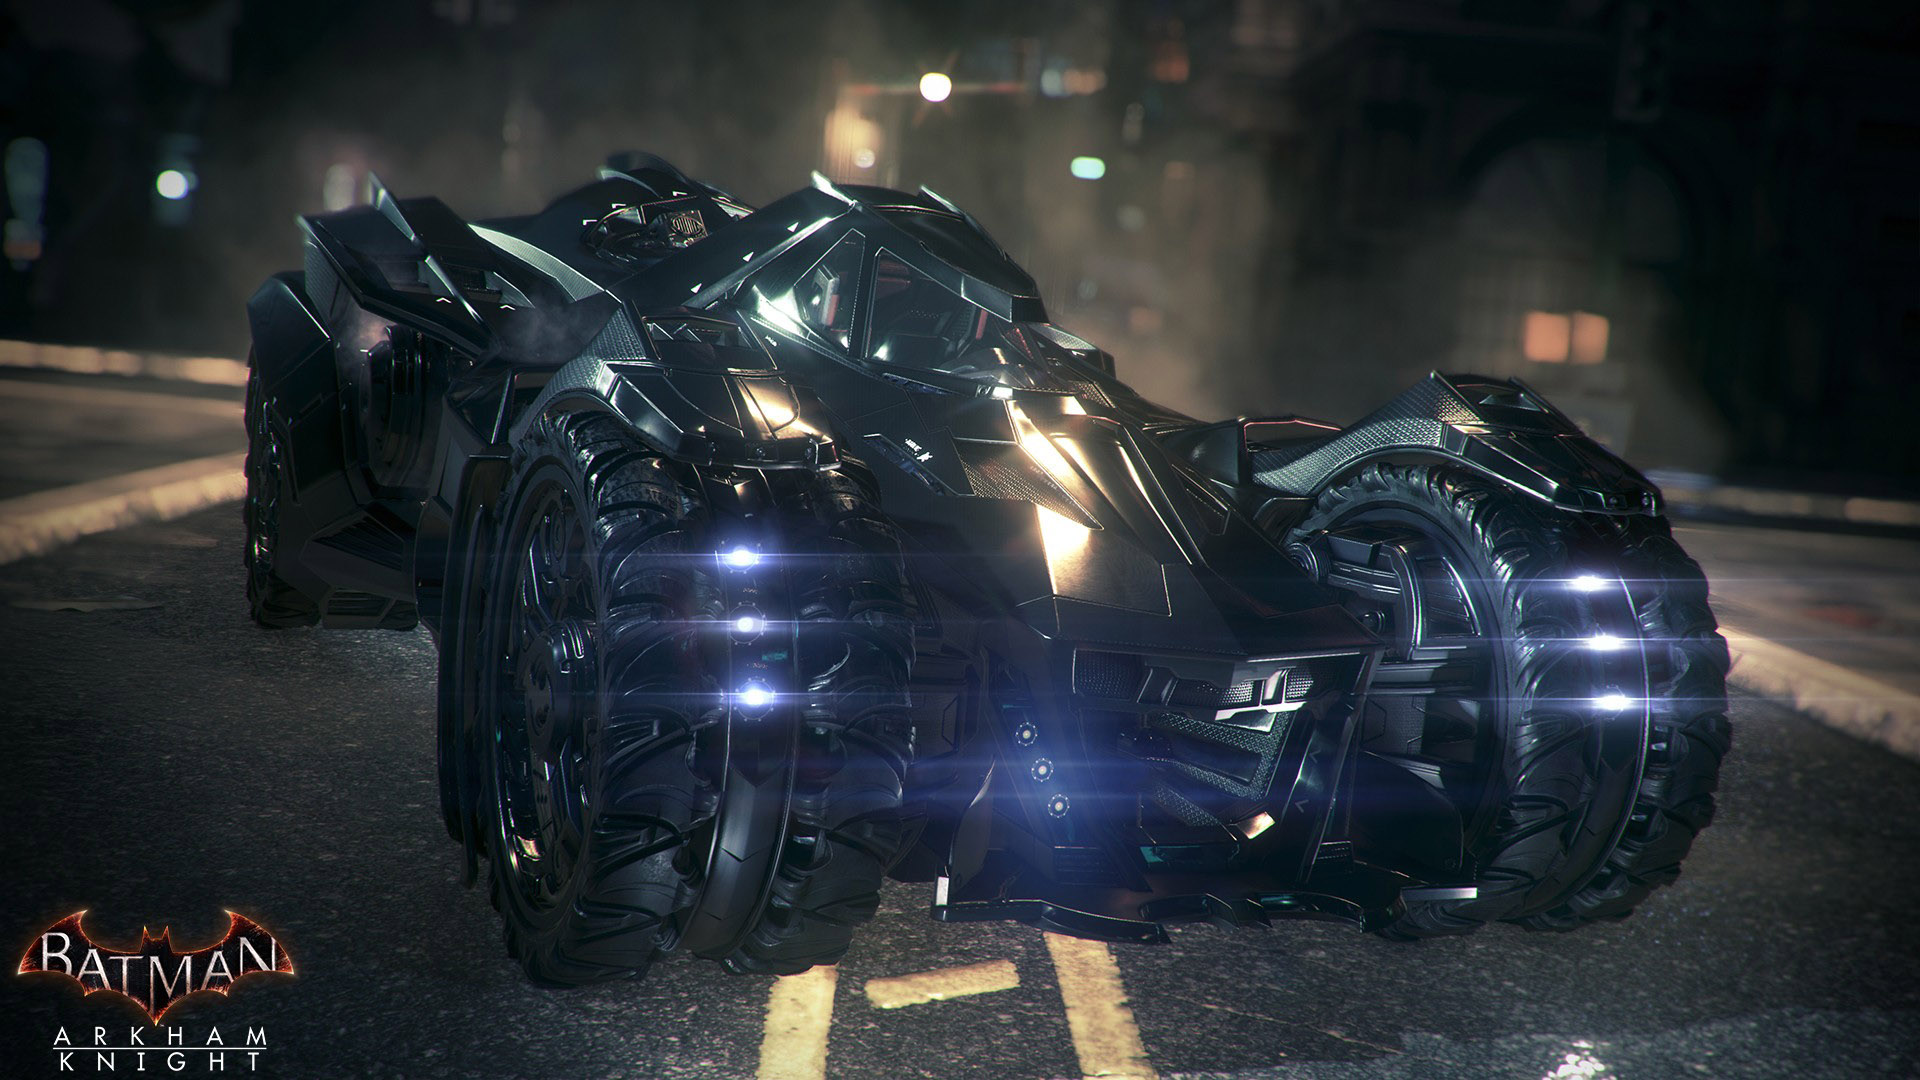 batmobile batman arkham knight 2017 - ototrends.net